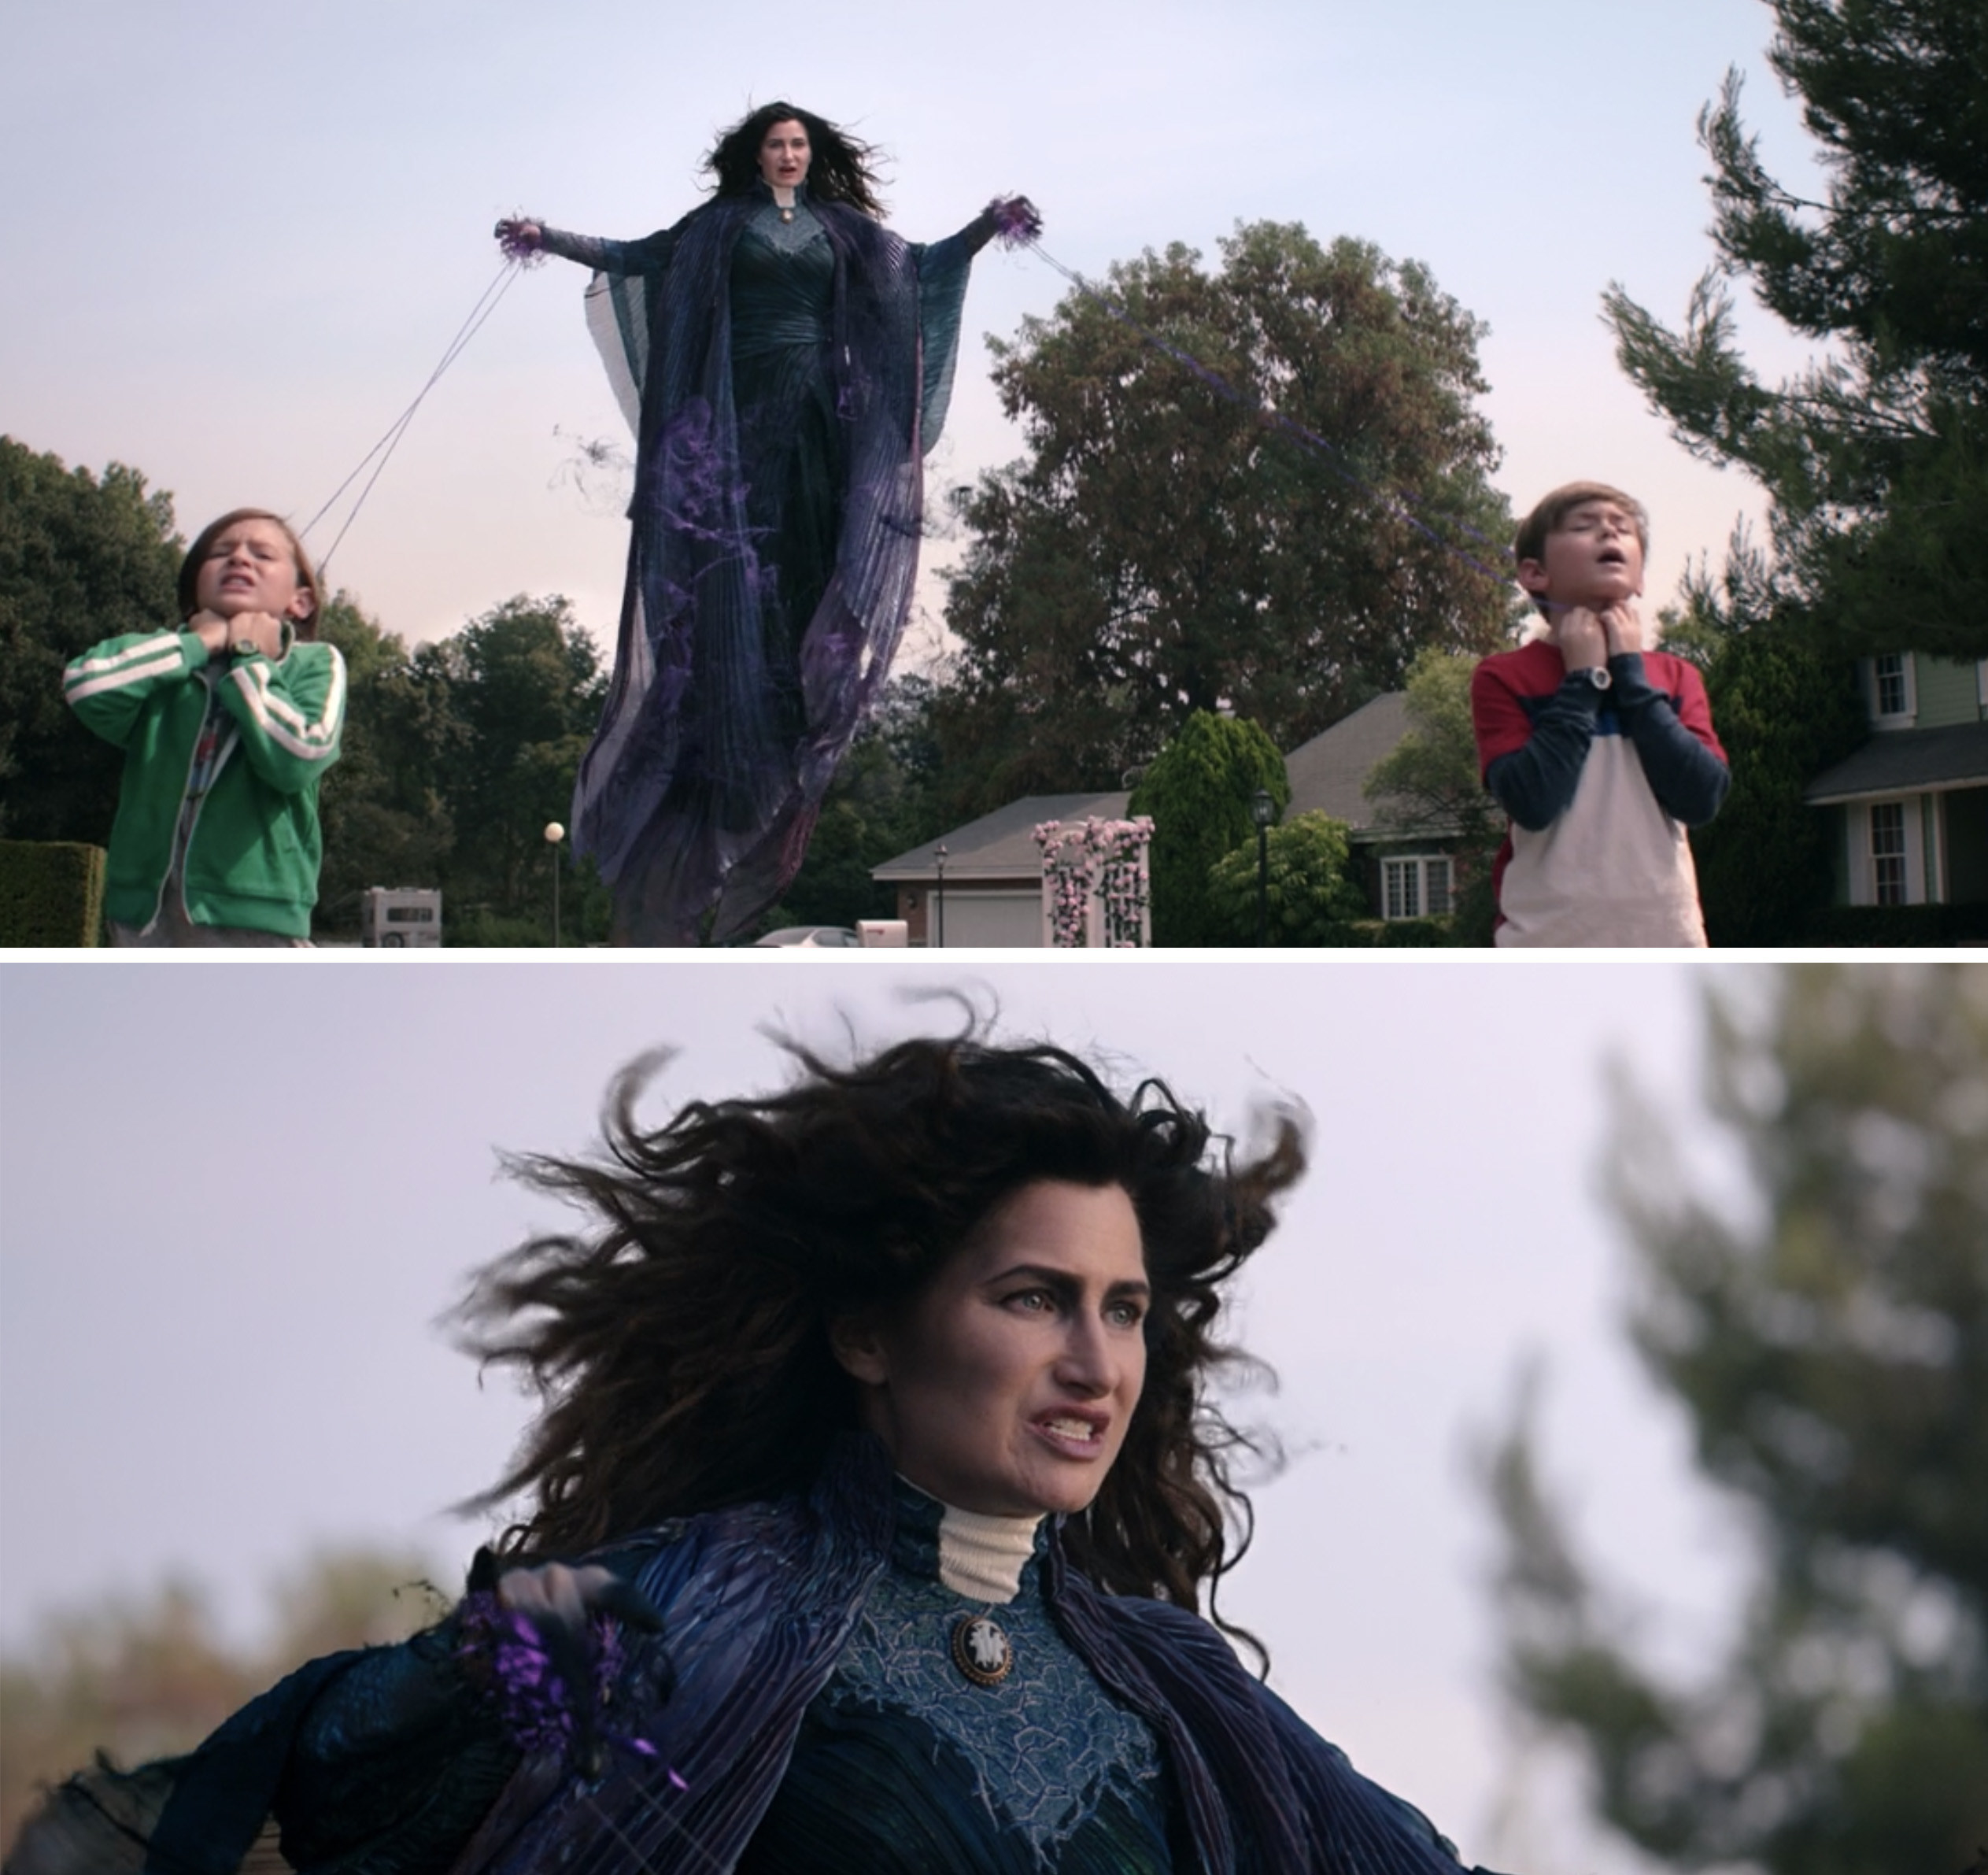 Agatha in a blue dress and purple magic radiating off of her while she uses a rope to hold Tommy and Billy in place